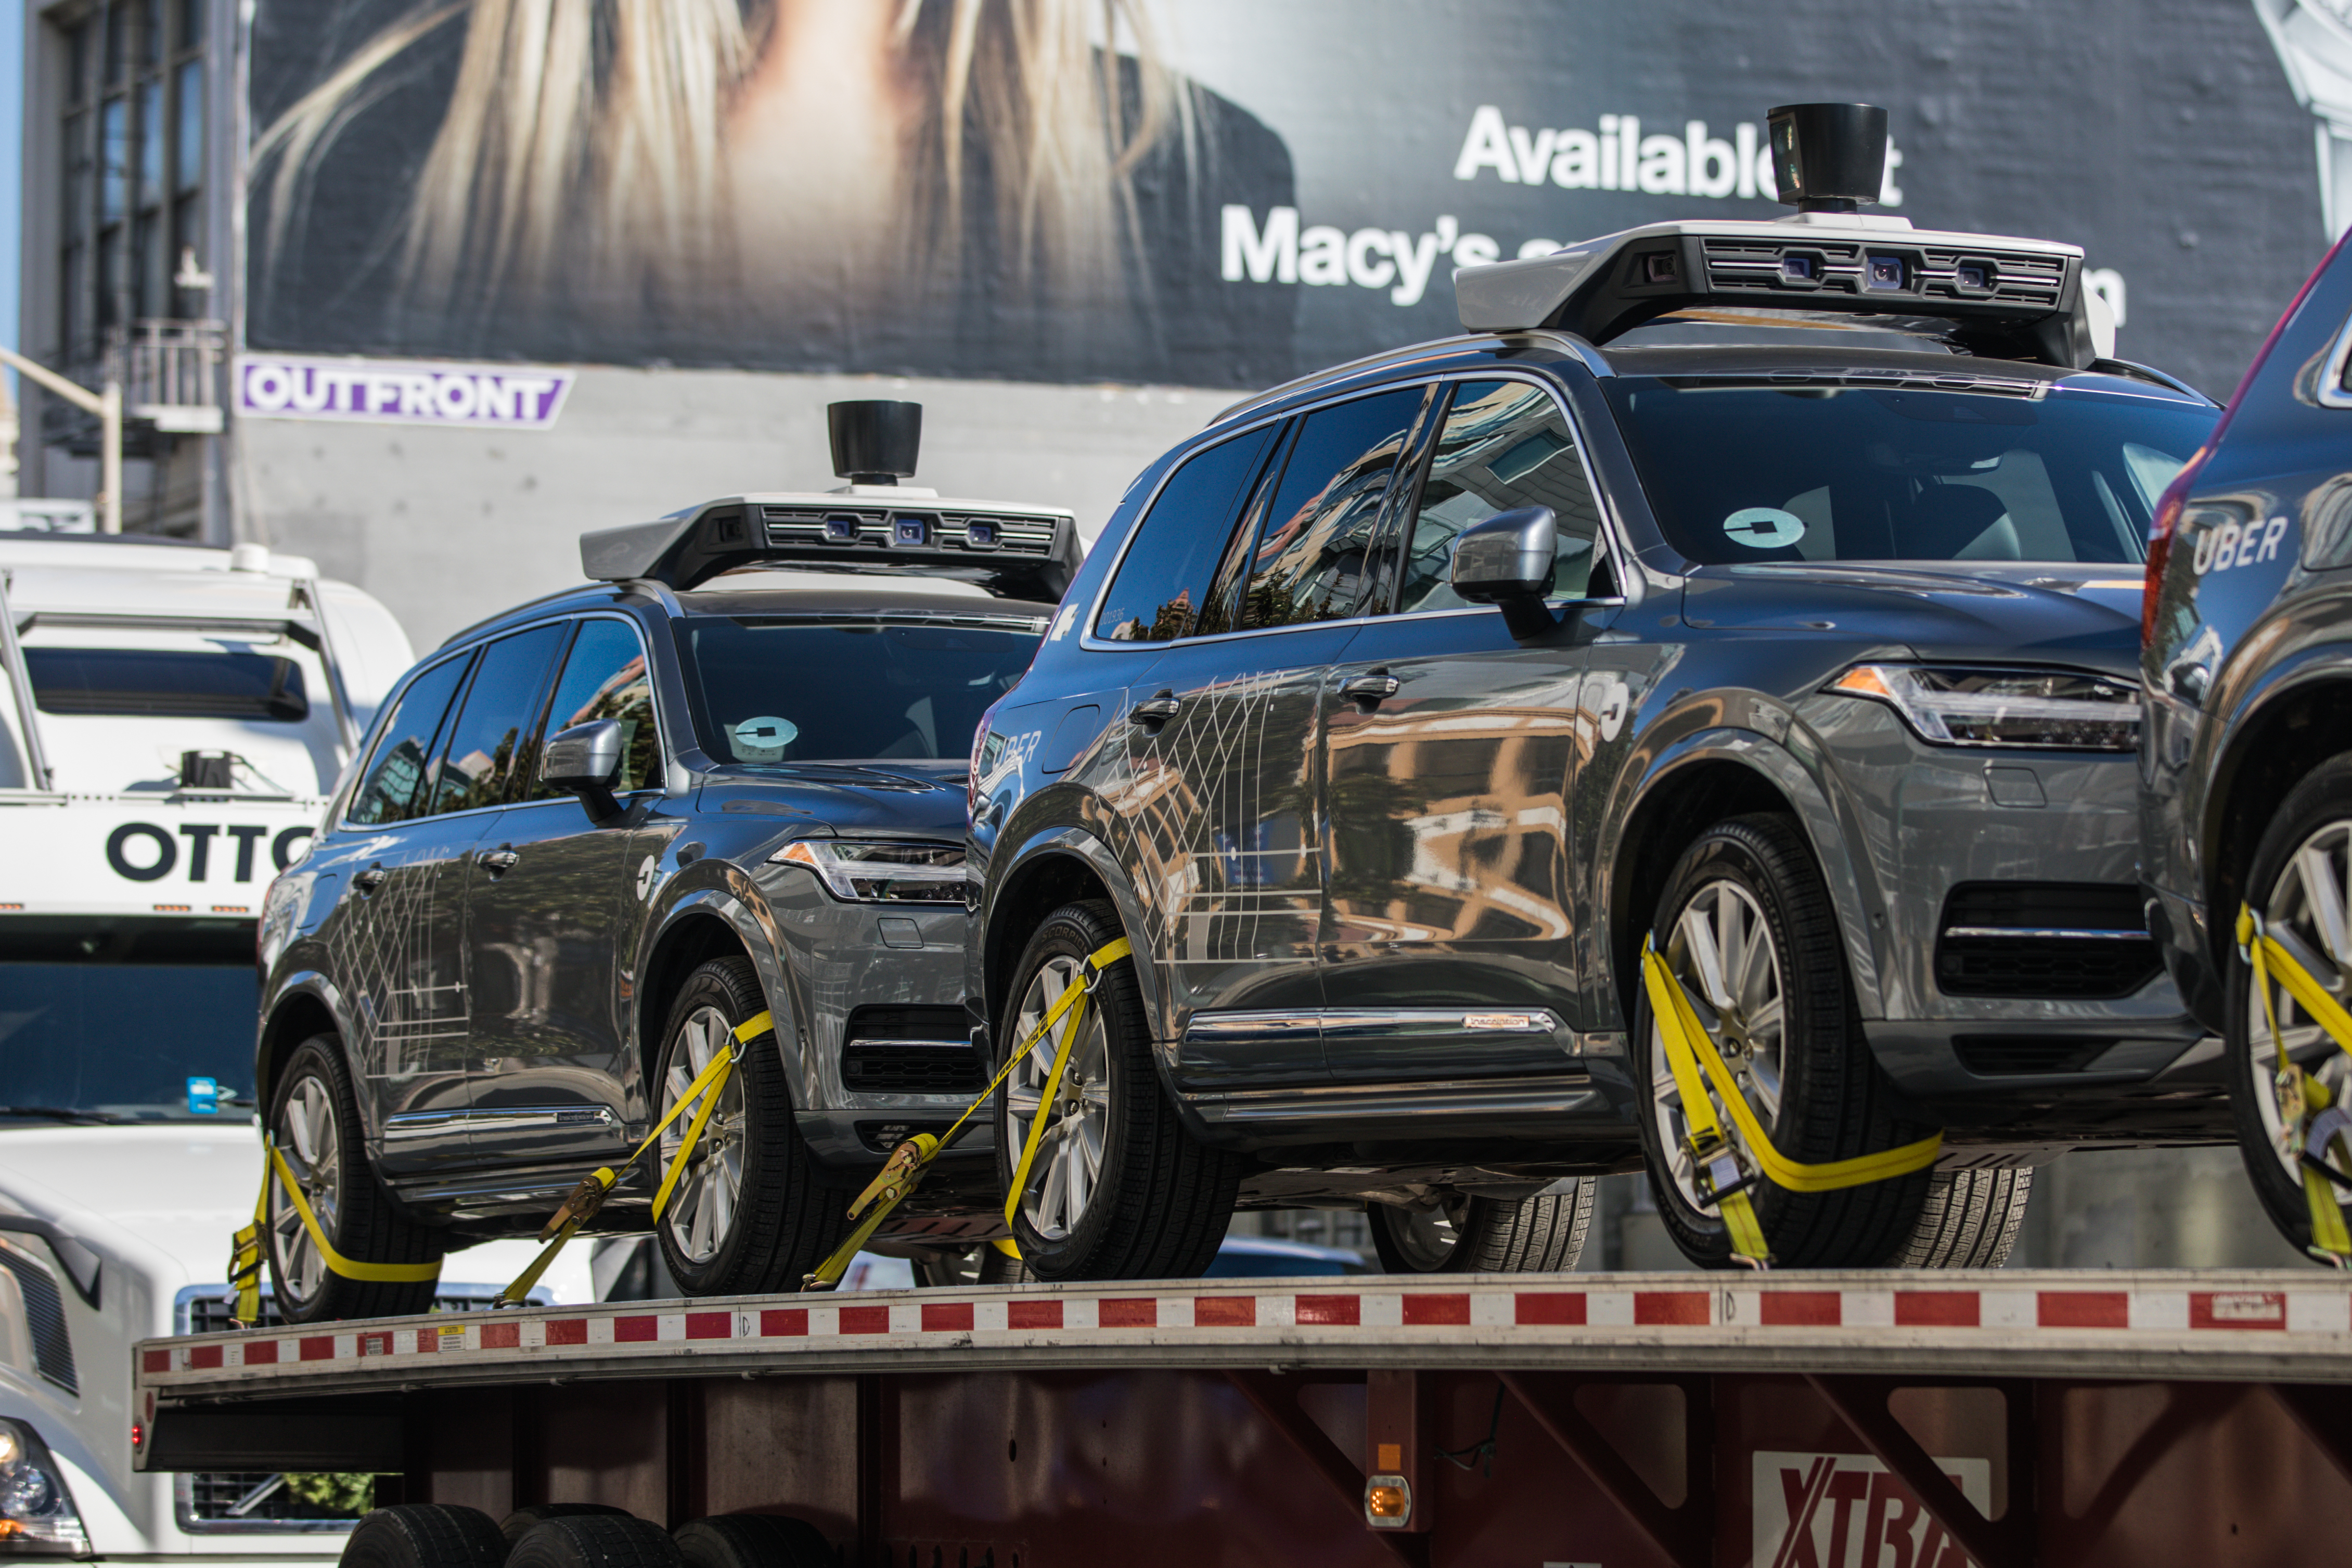 Uber's self-driving Volvo cars being loaded on an Otto truck.